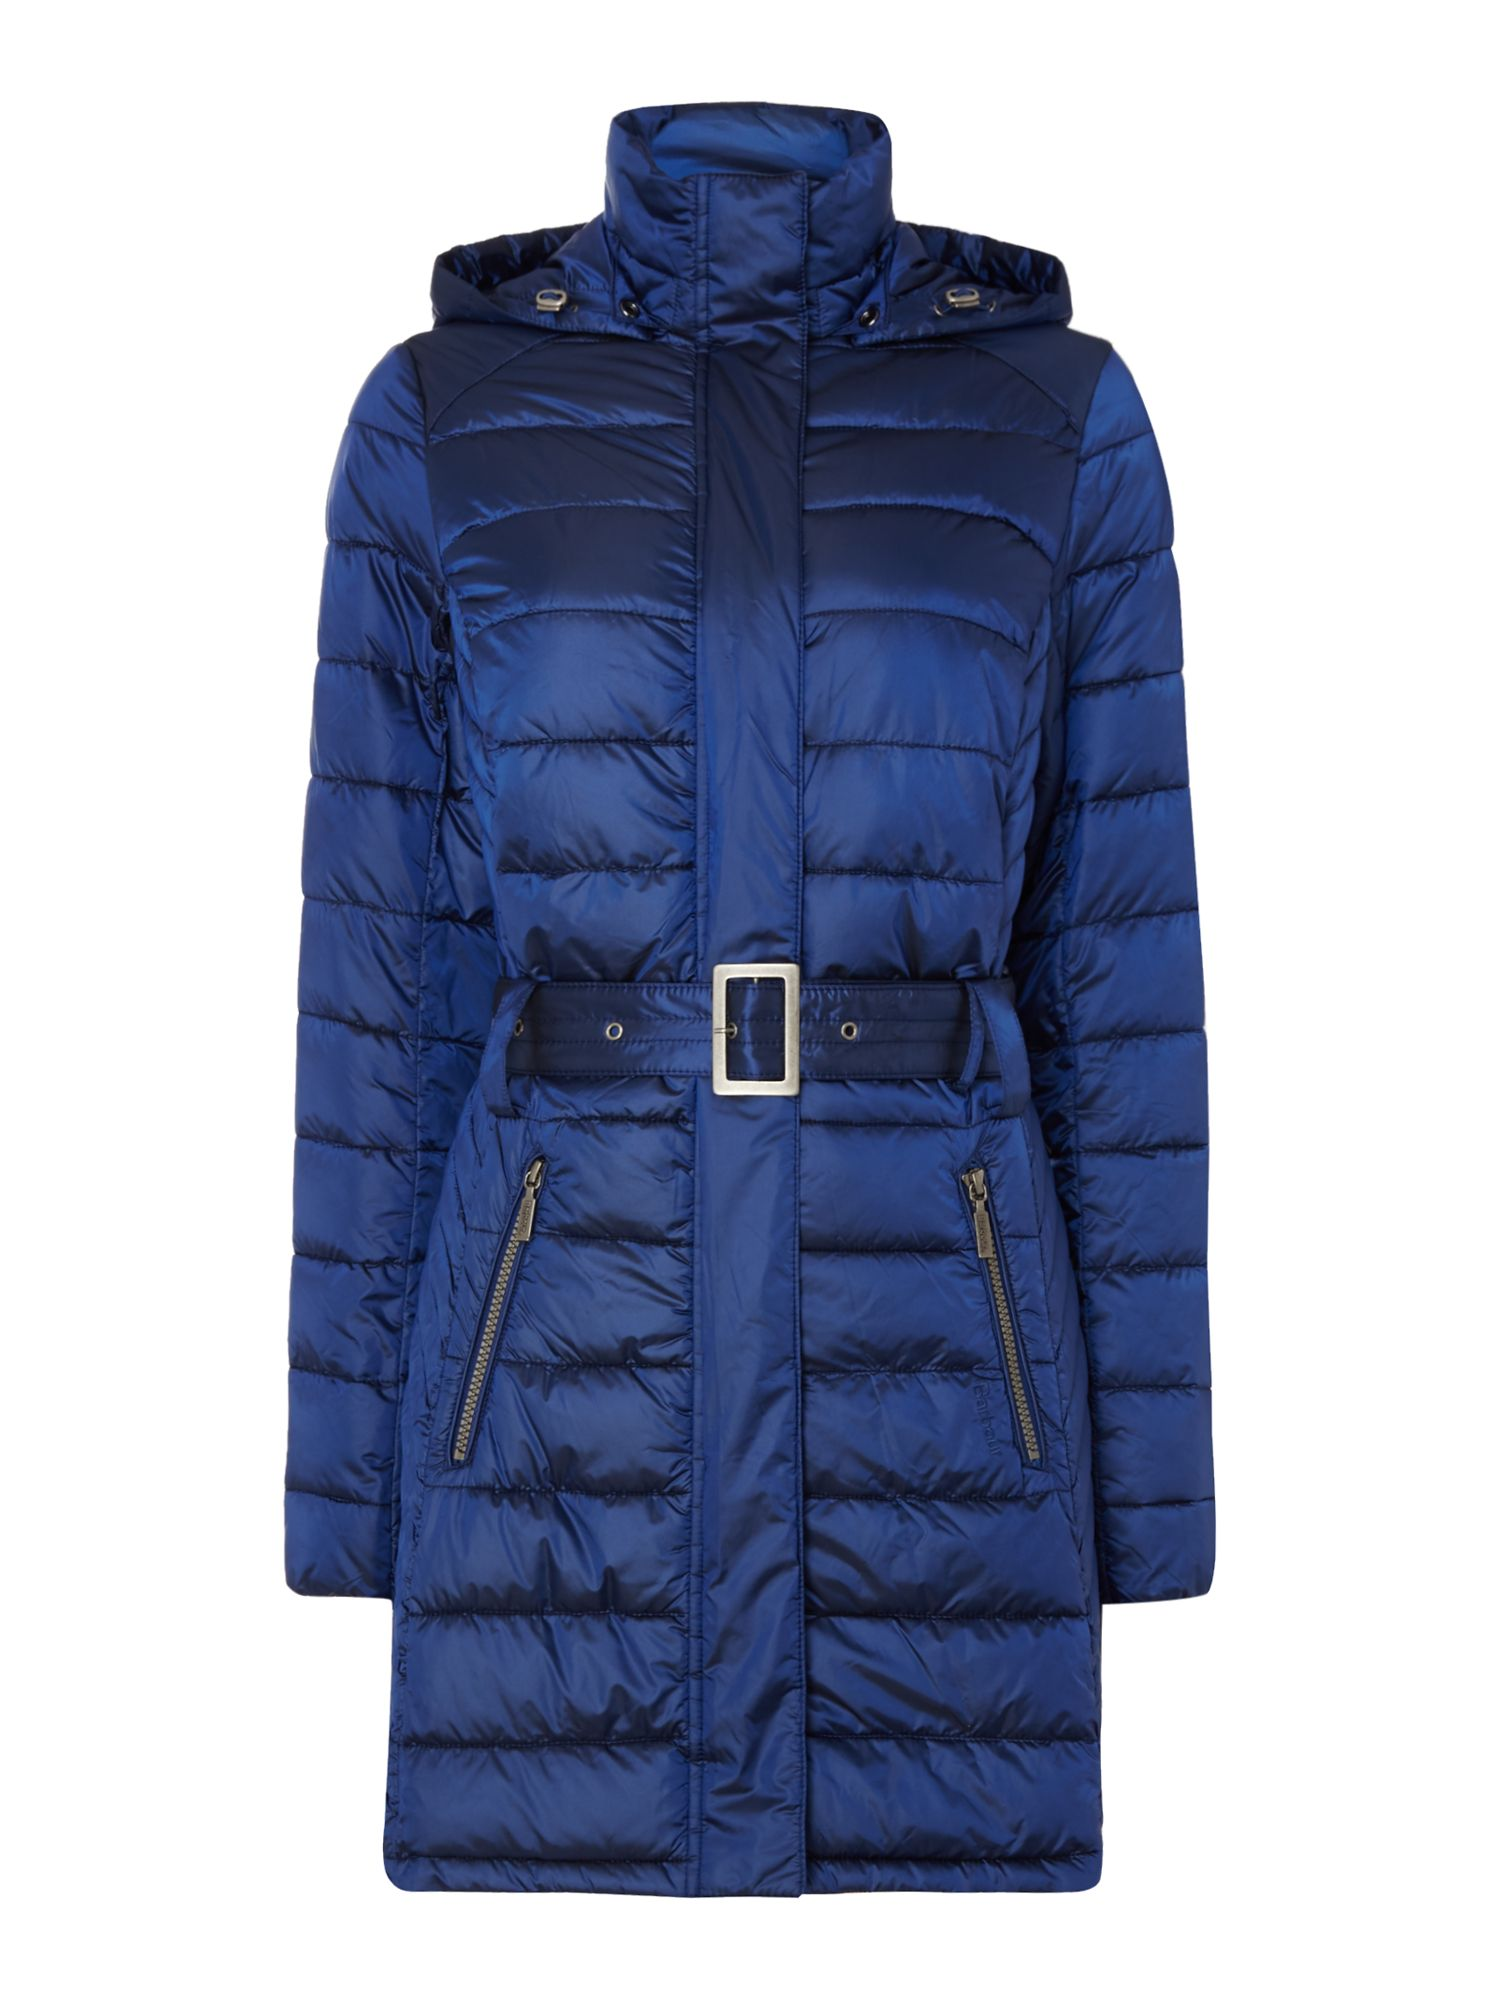 Barbour Braemar Long Quilted Coat With Hood, Sapphire Blue